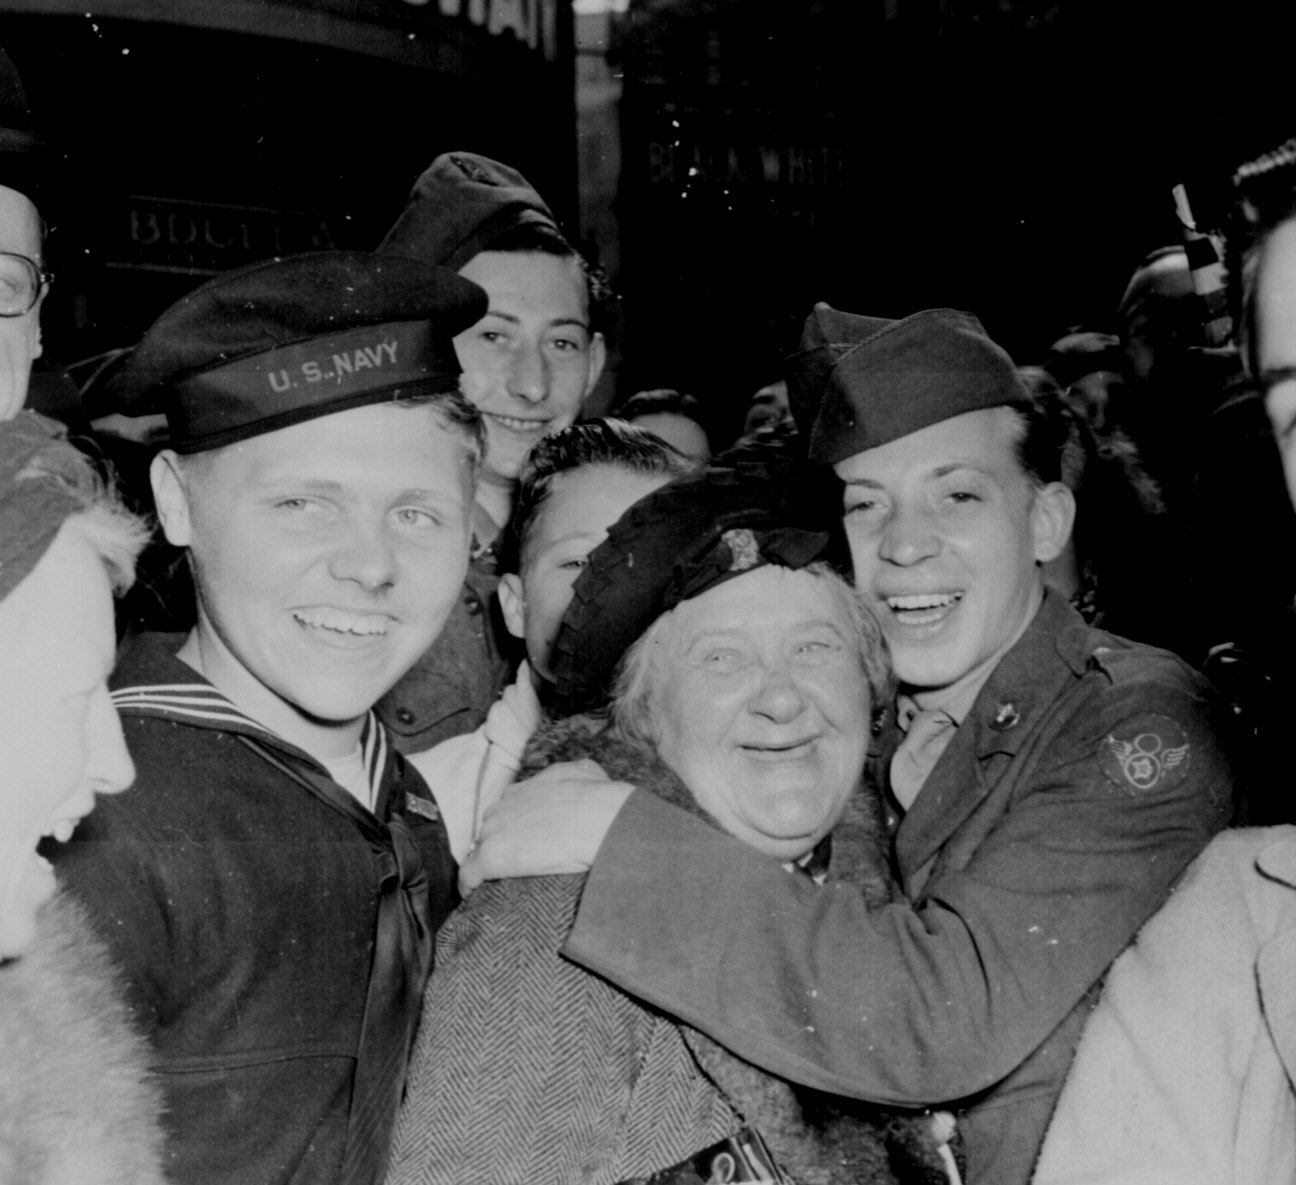 A jubilant American airman hugging an English woman at Piccadilly Circus, London, England, celebrating Germany's unconditional surrender, 7 May 1945 (US National Archives: 111-SC-205398)